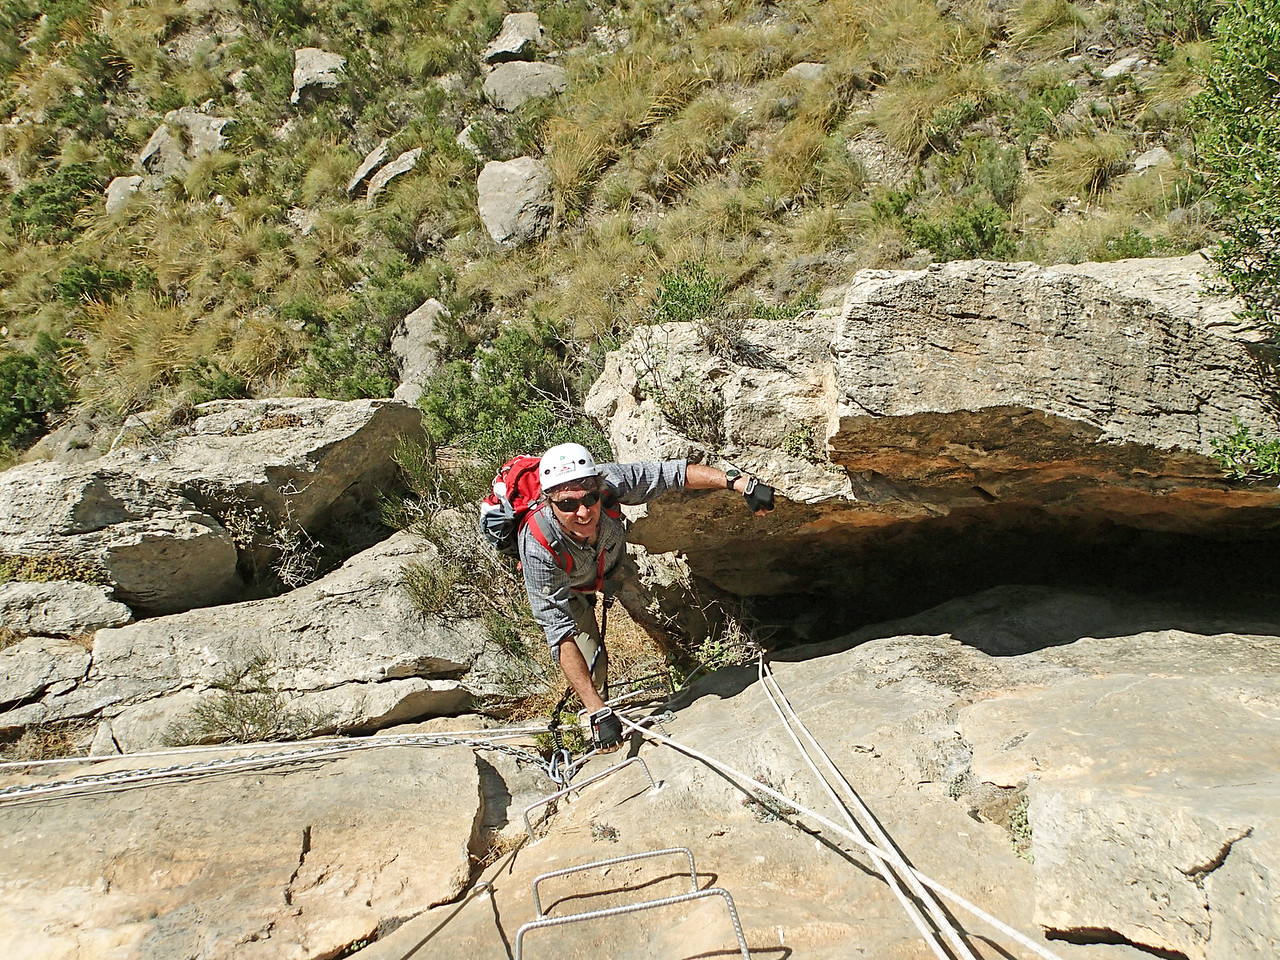 Philippe on the Penya del Figueret Via Ferrata